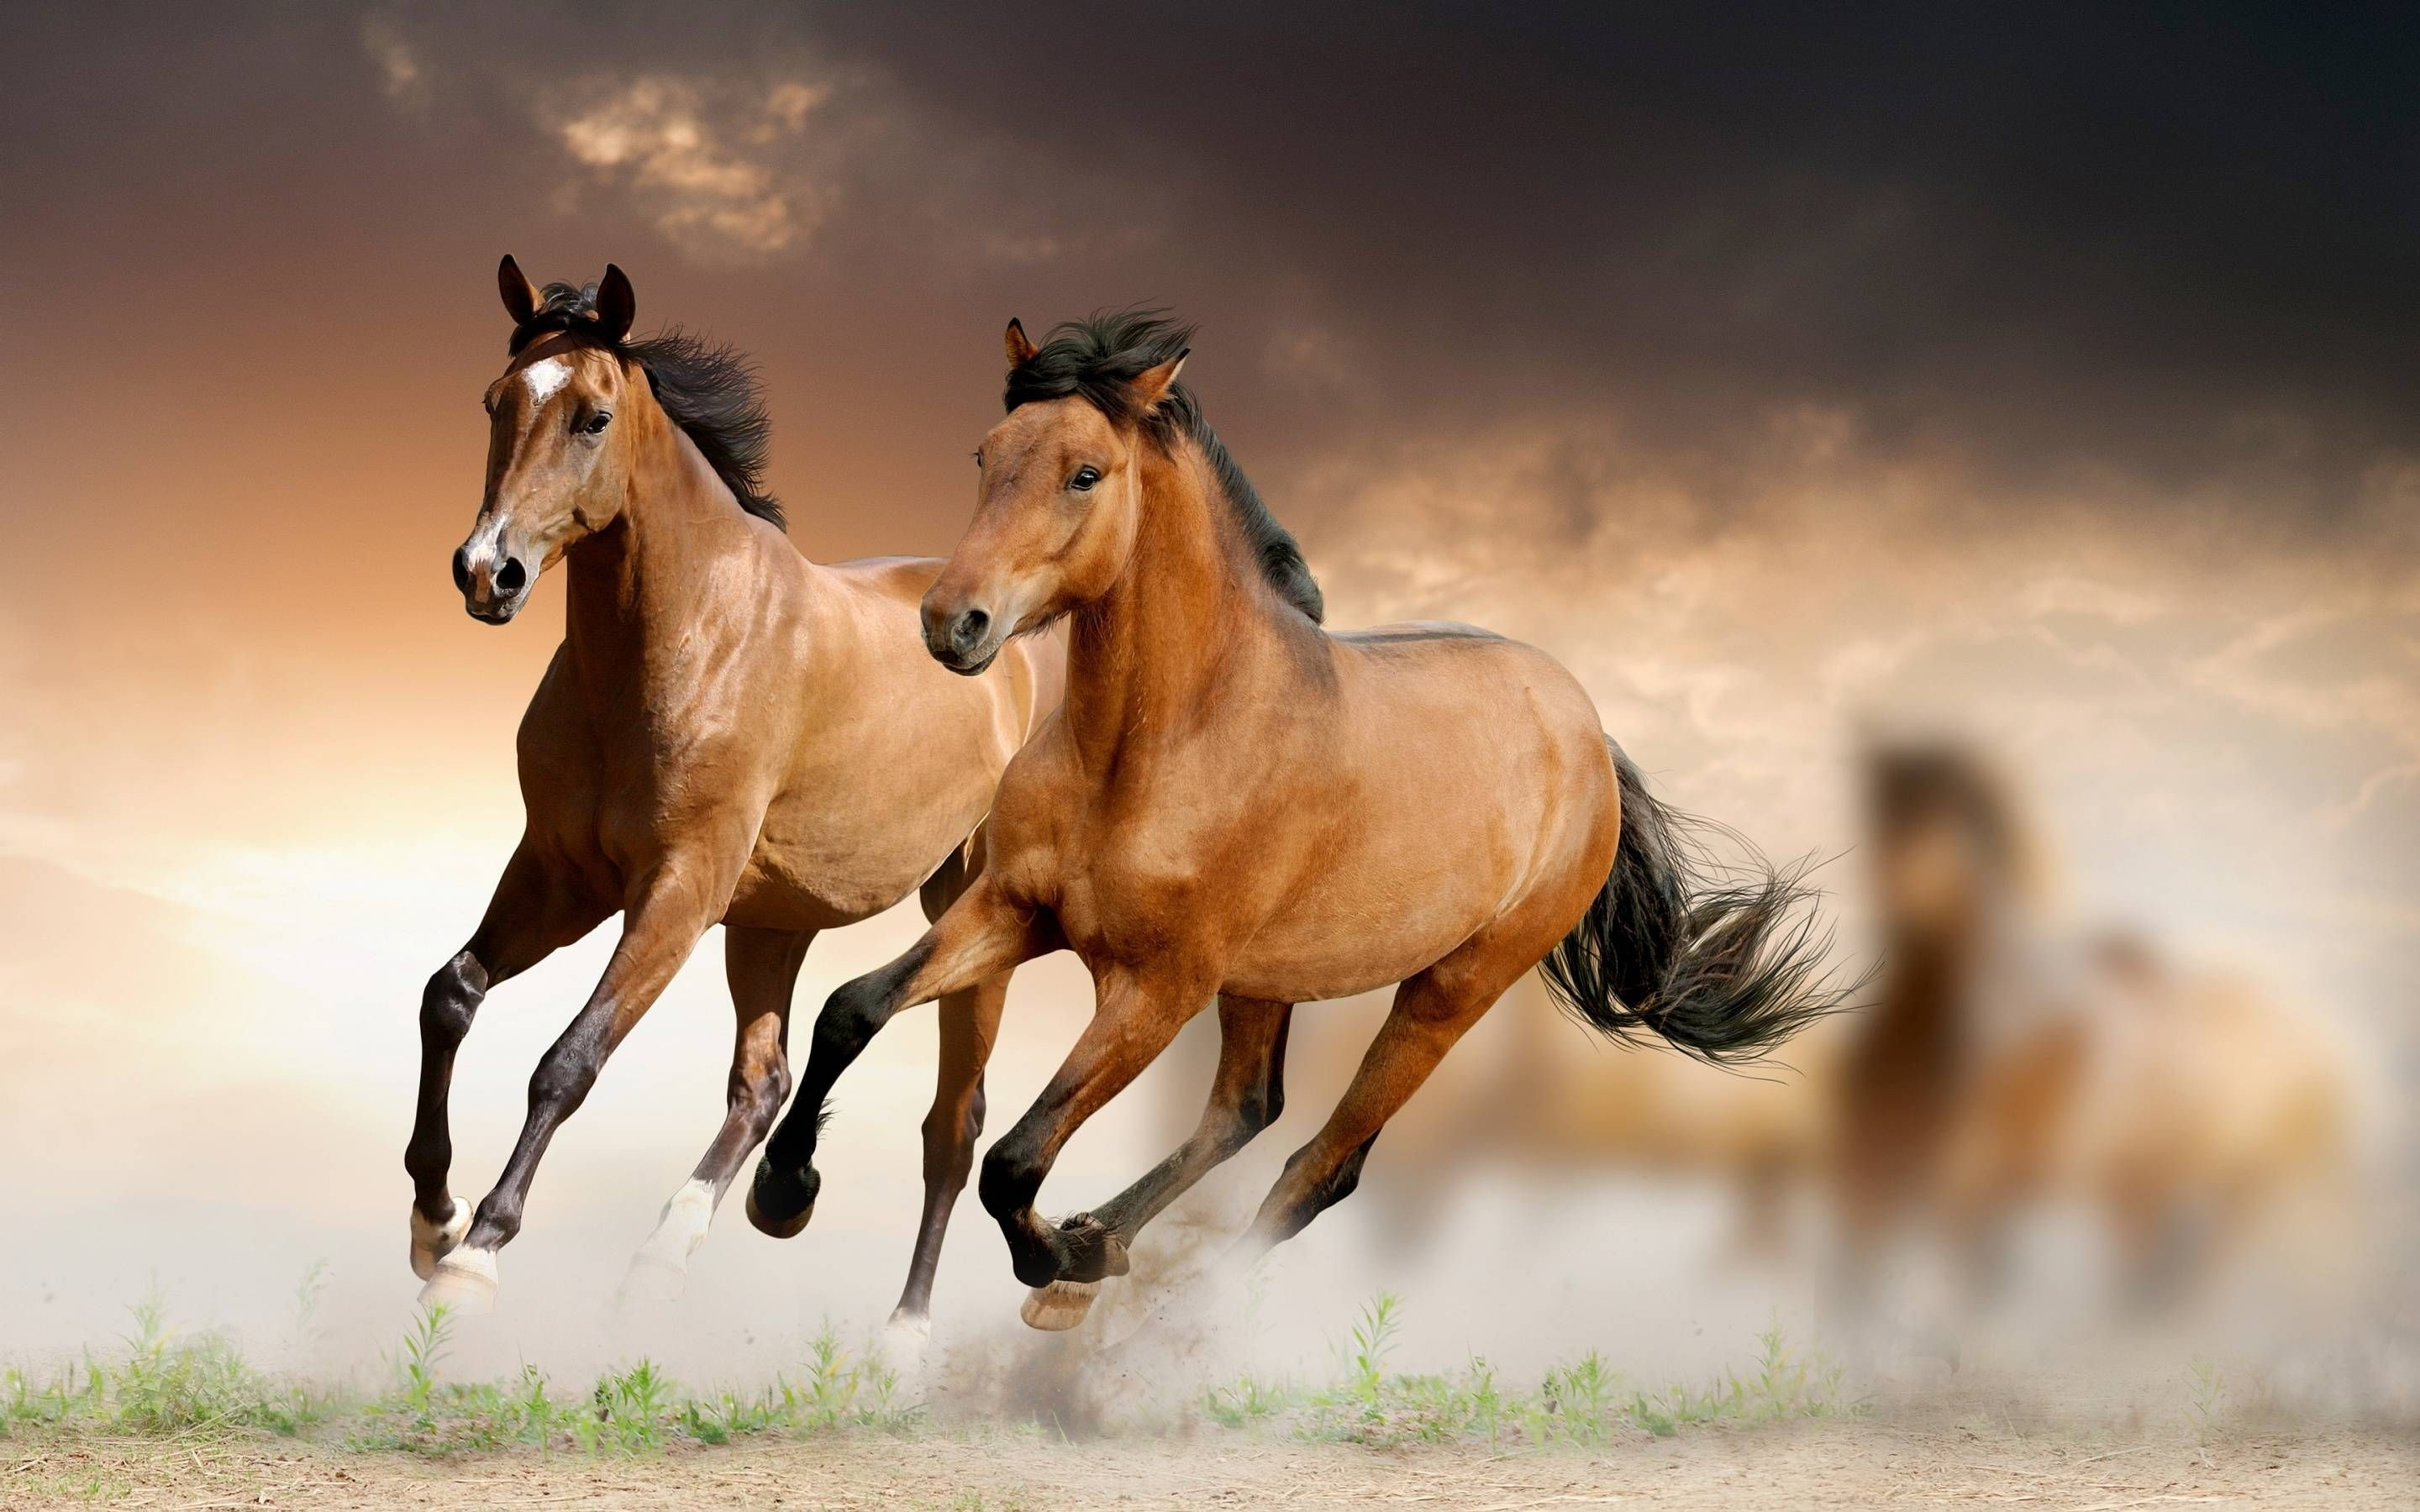 Res: 2880x1800, Full HD p Horse Wallpapers HD Desktop Backgrounds x